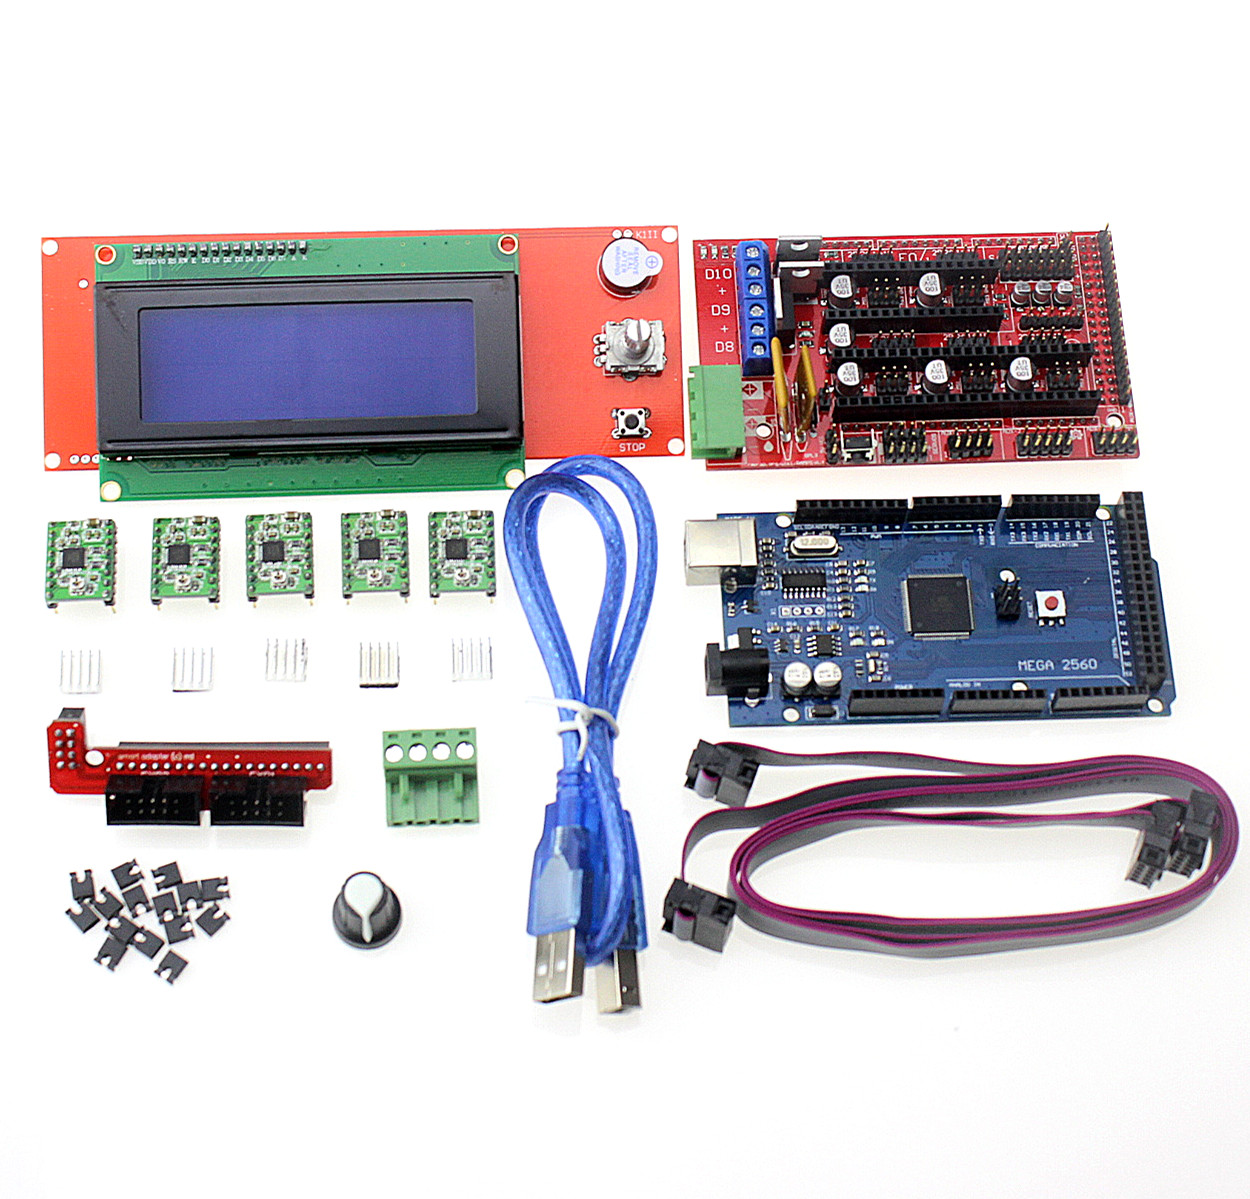 3D Printer Kit Mega 2560 R3 + 1Pcs RAMPS 1.4 Controller + 5Pcs A4988 Stepper Driver Module / RAMPS 1.4 2004 LCD control